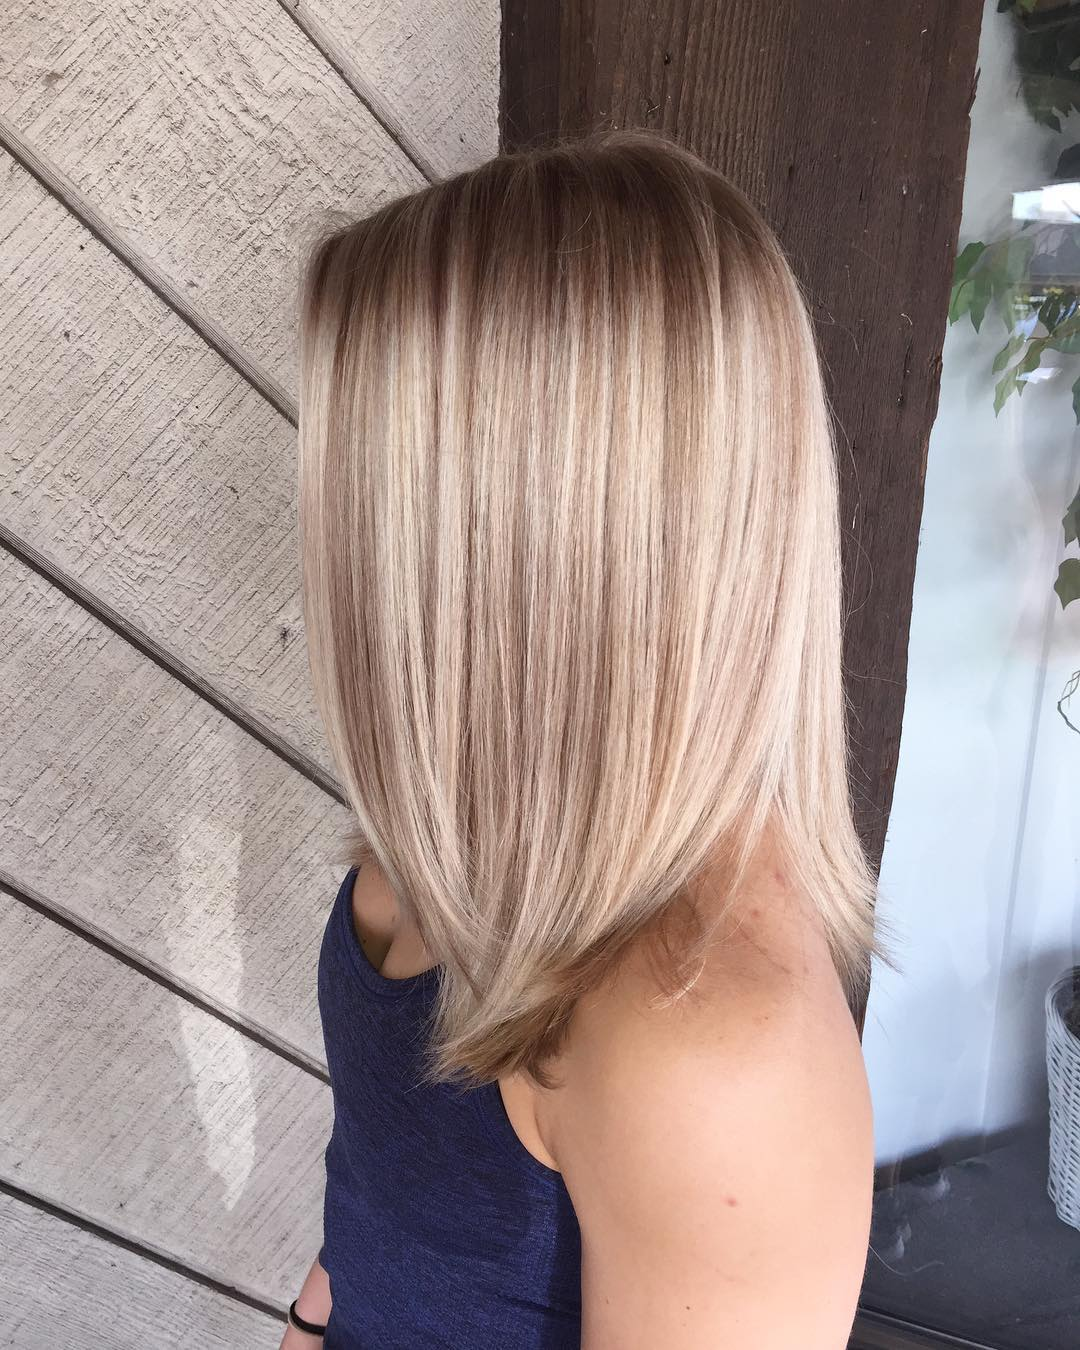 Light blonde hair with brown highlights